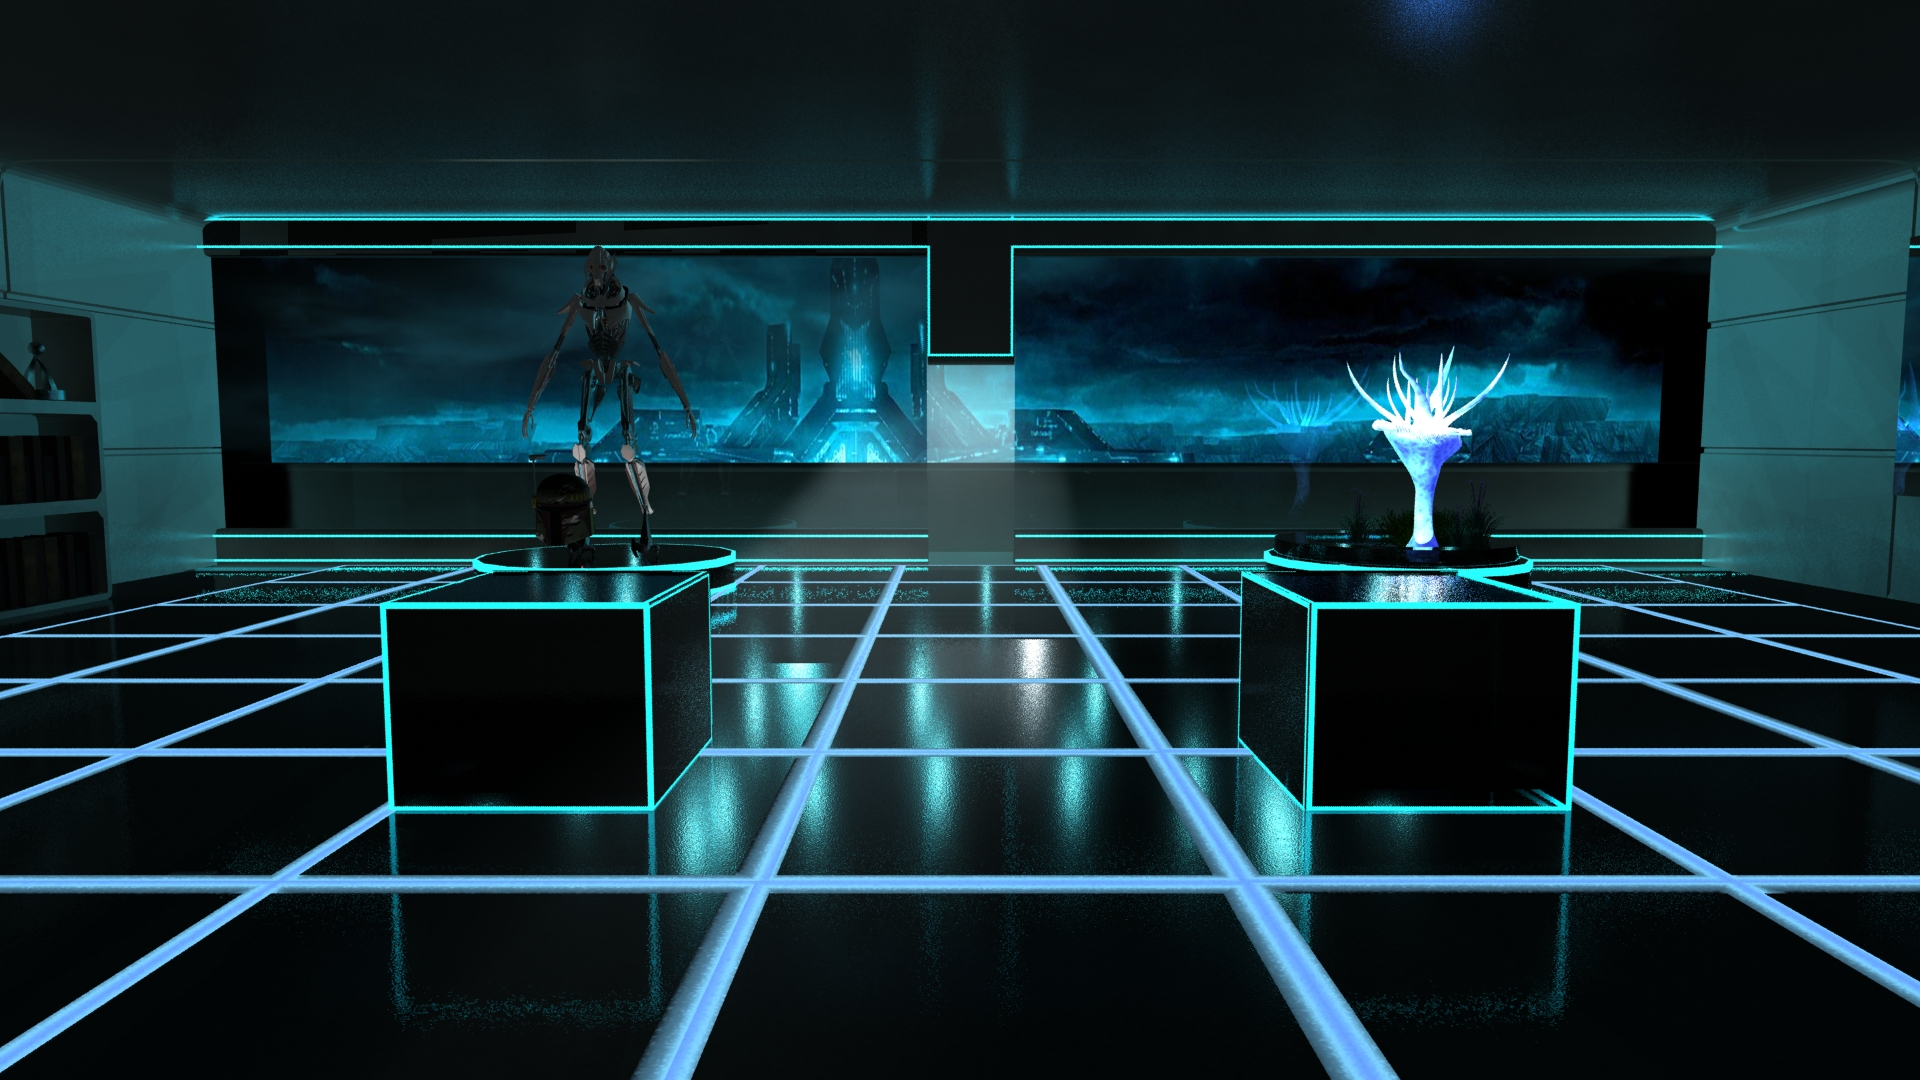 ... Tron Museum by Mymph-of-Angels  sc 1 st  DeviantArt & Tron Museum by Mymph-of-Angels on DeviantArt